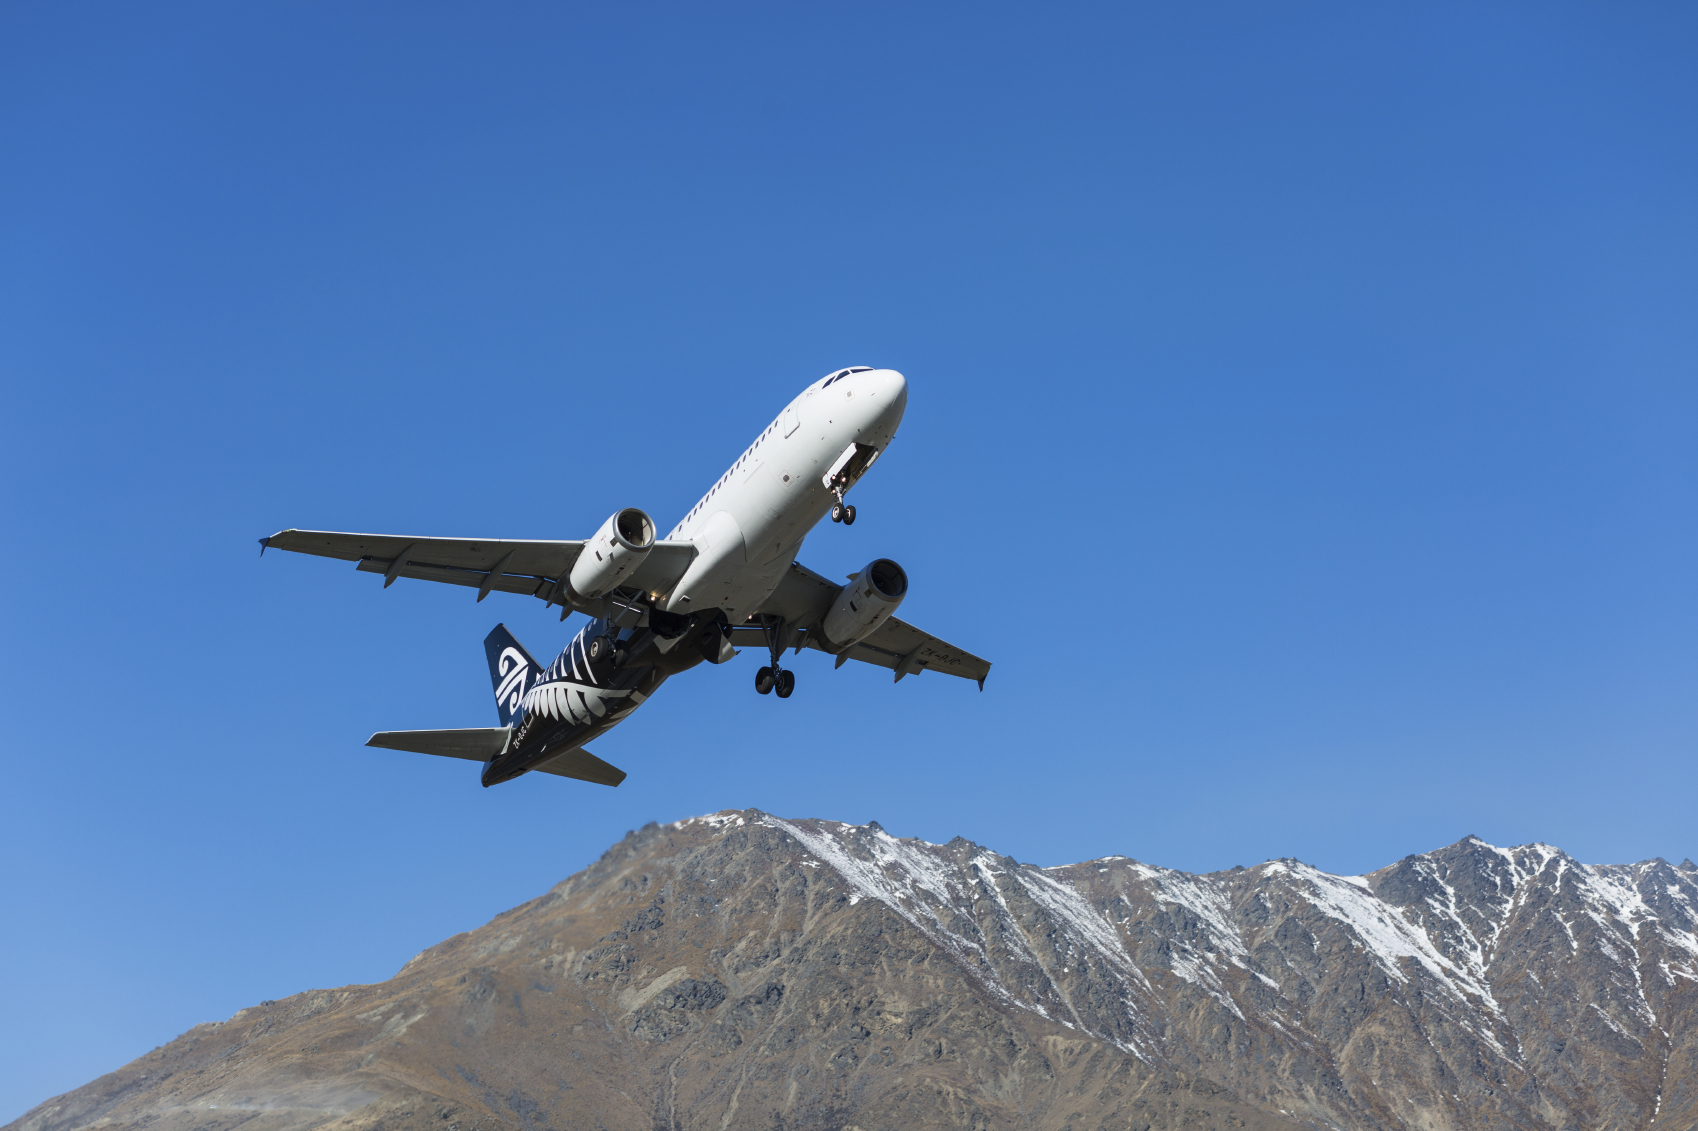 Cheap Last Minute Flights >> How To Find Cheap Last Minute Flights